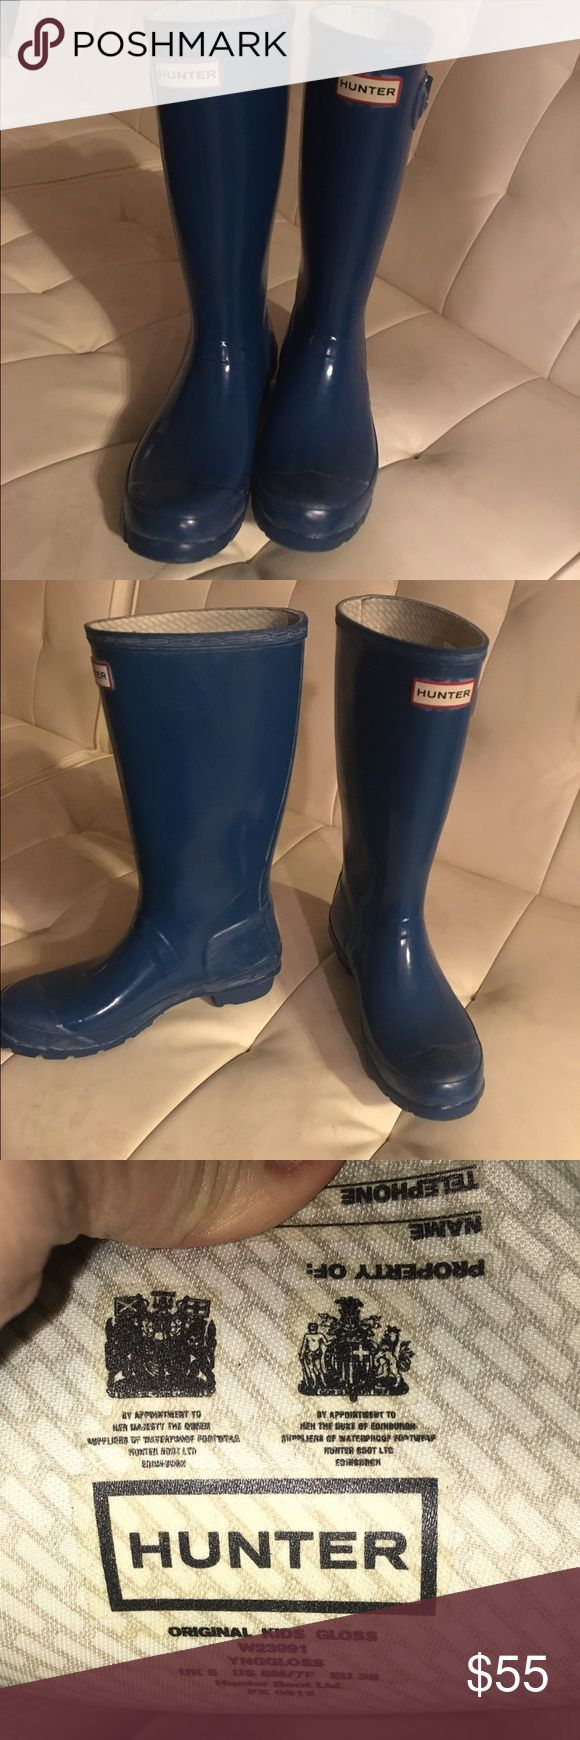 Sale! Discounted Turquoise Hunter Rainboots! Gorgeous color for Hunter Boots size 7authenticity guaranteed :) Hunter Shoes Winter & Rain Boots